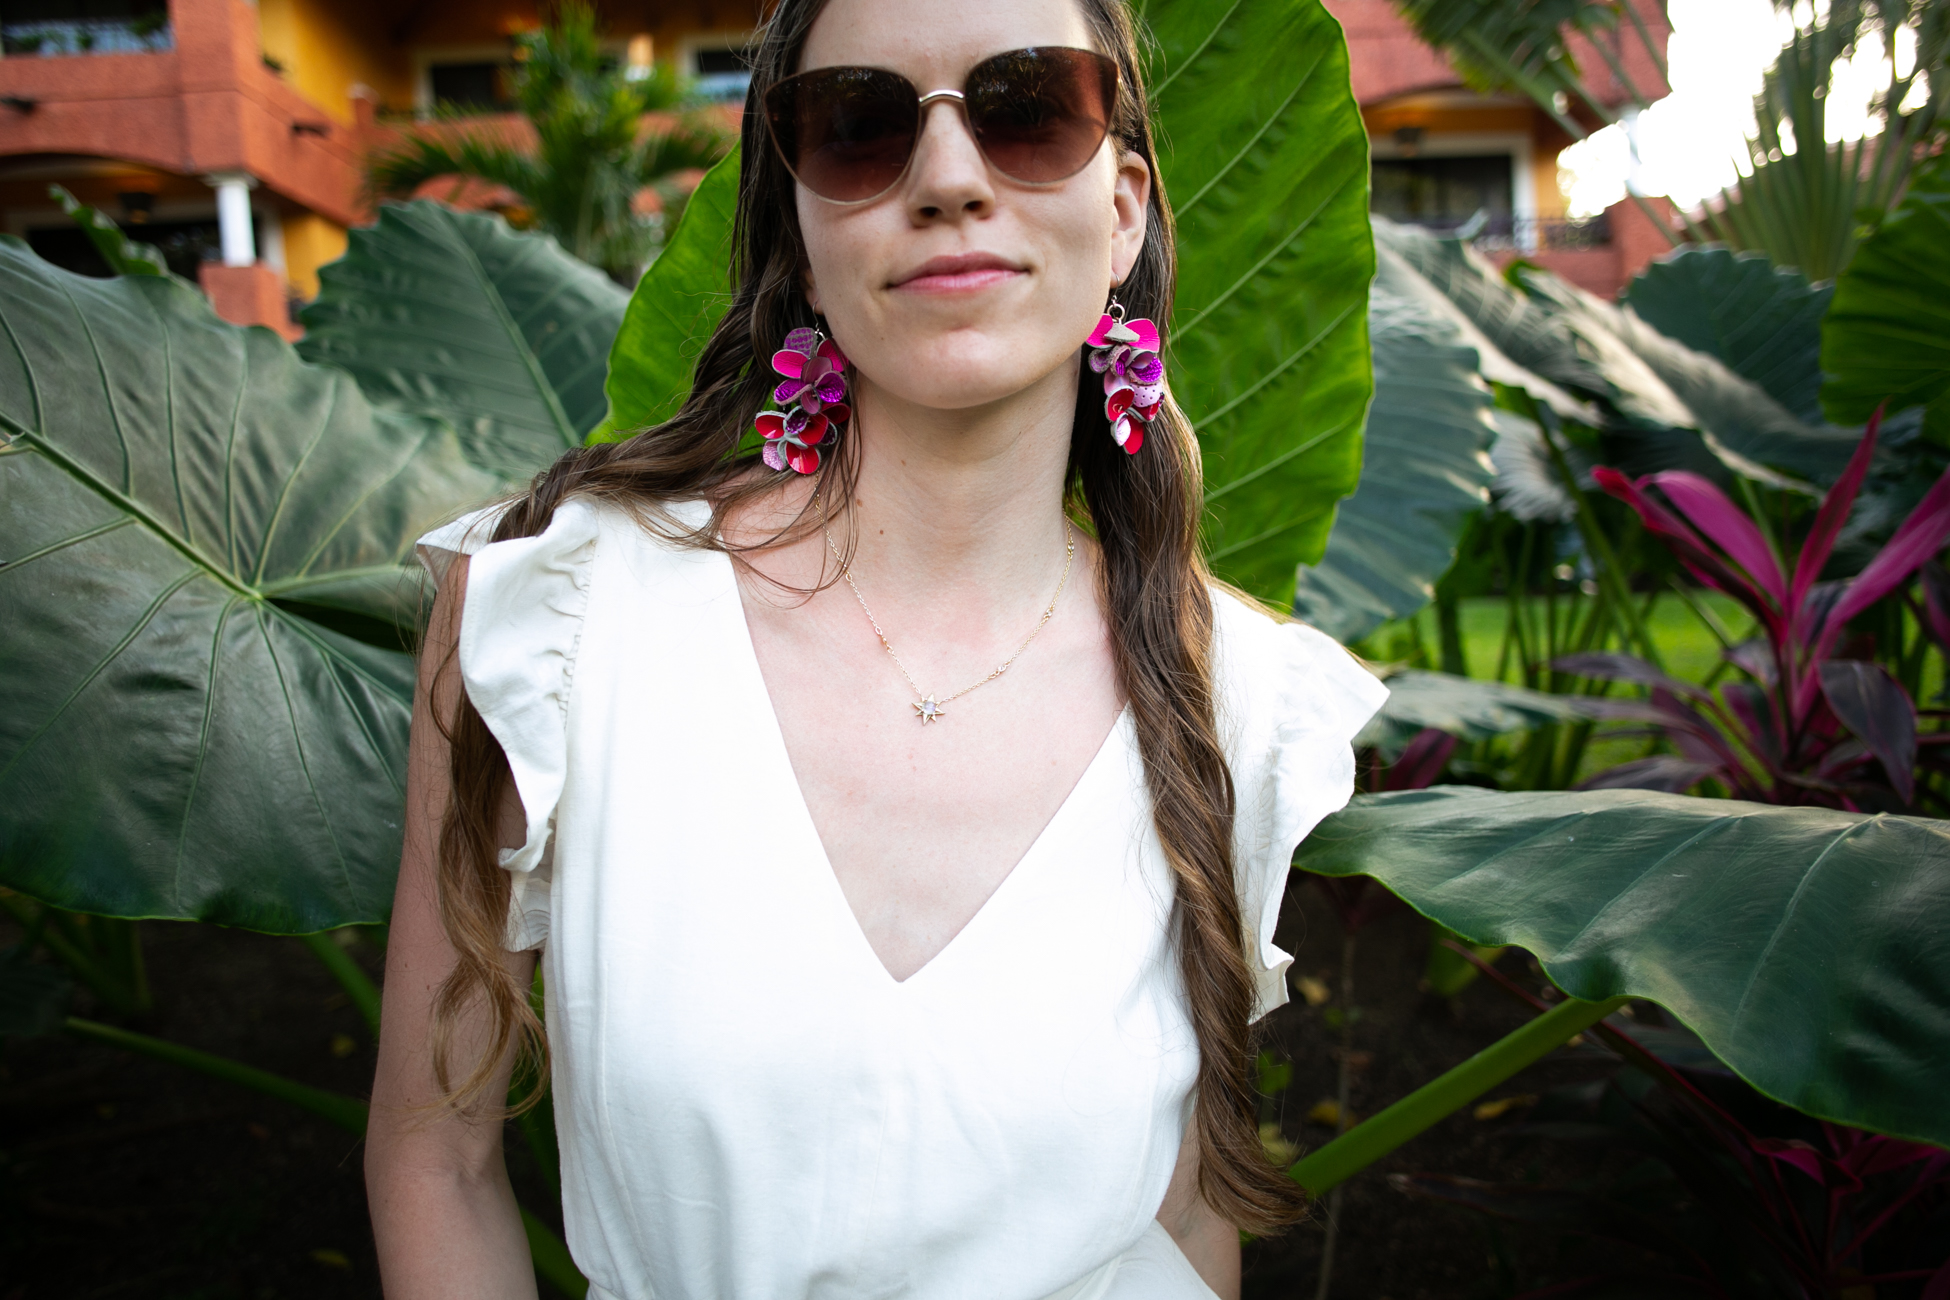 Blending in among the megafauna. Earrings by  Mekunia  and Necklace by  Emily Kiefer.